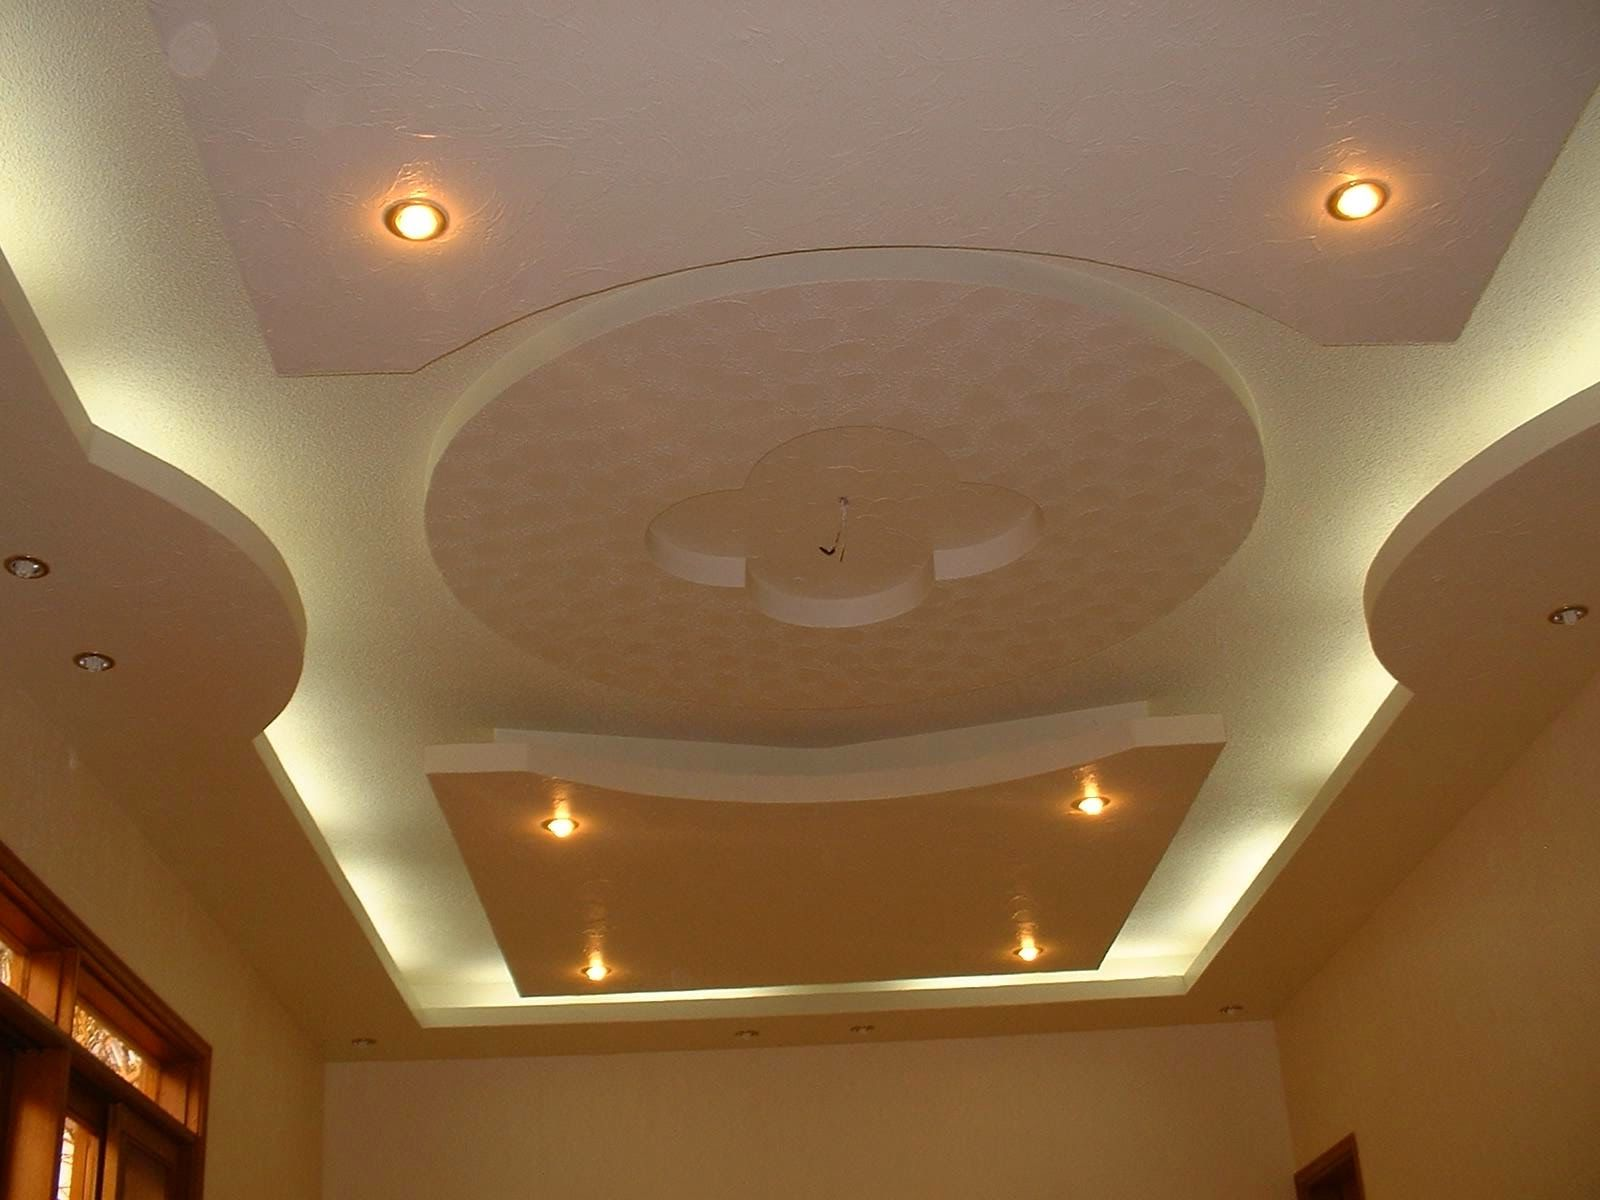 Pop Ceiling Design For Hall With 2 Fans Wallpaperall Ceiling